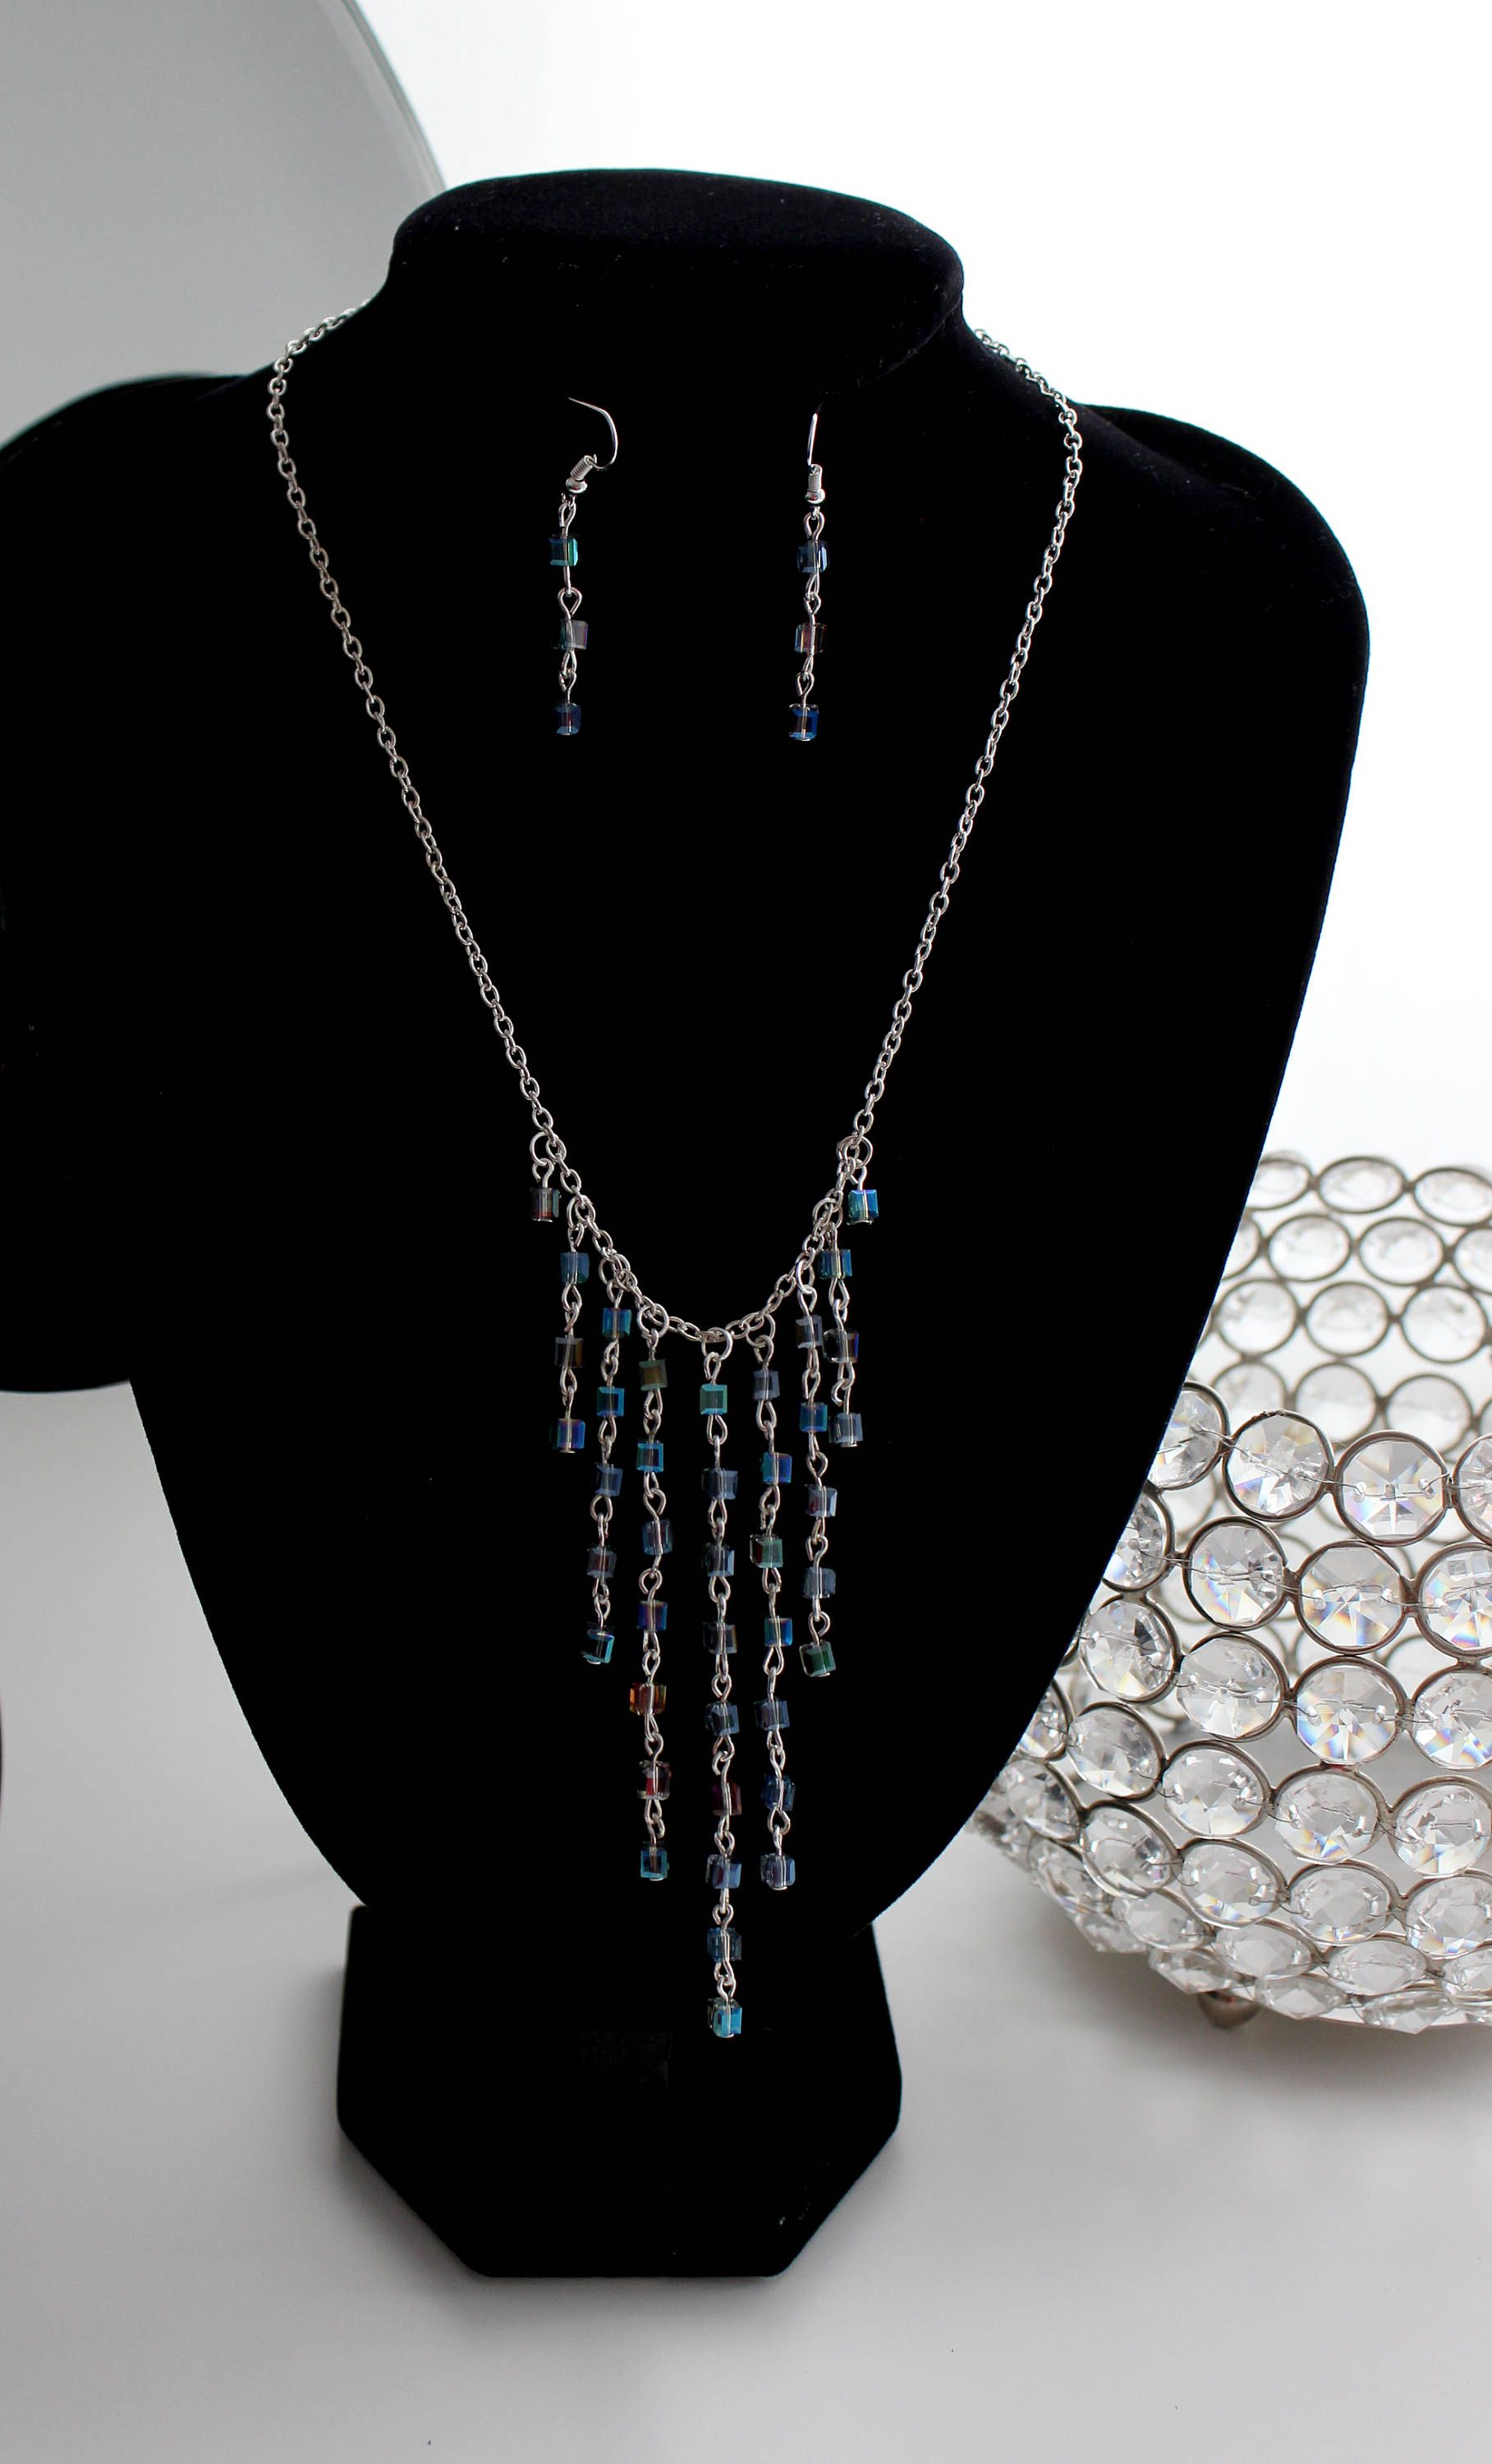 Jewelry set Lobster clasp Glass square beads Light vitrail color beads Cascade necklace and french hook dangle earrings. Silver tone